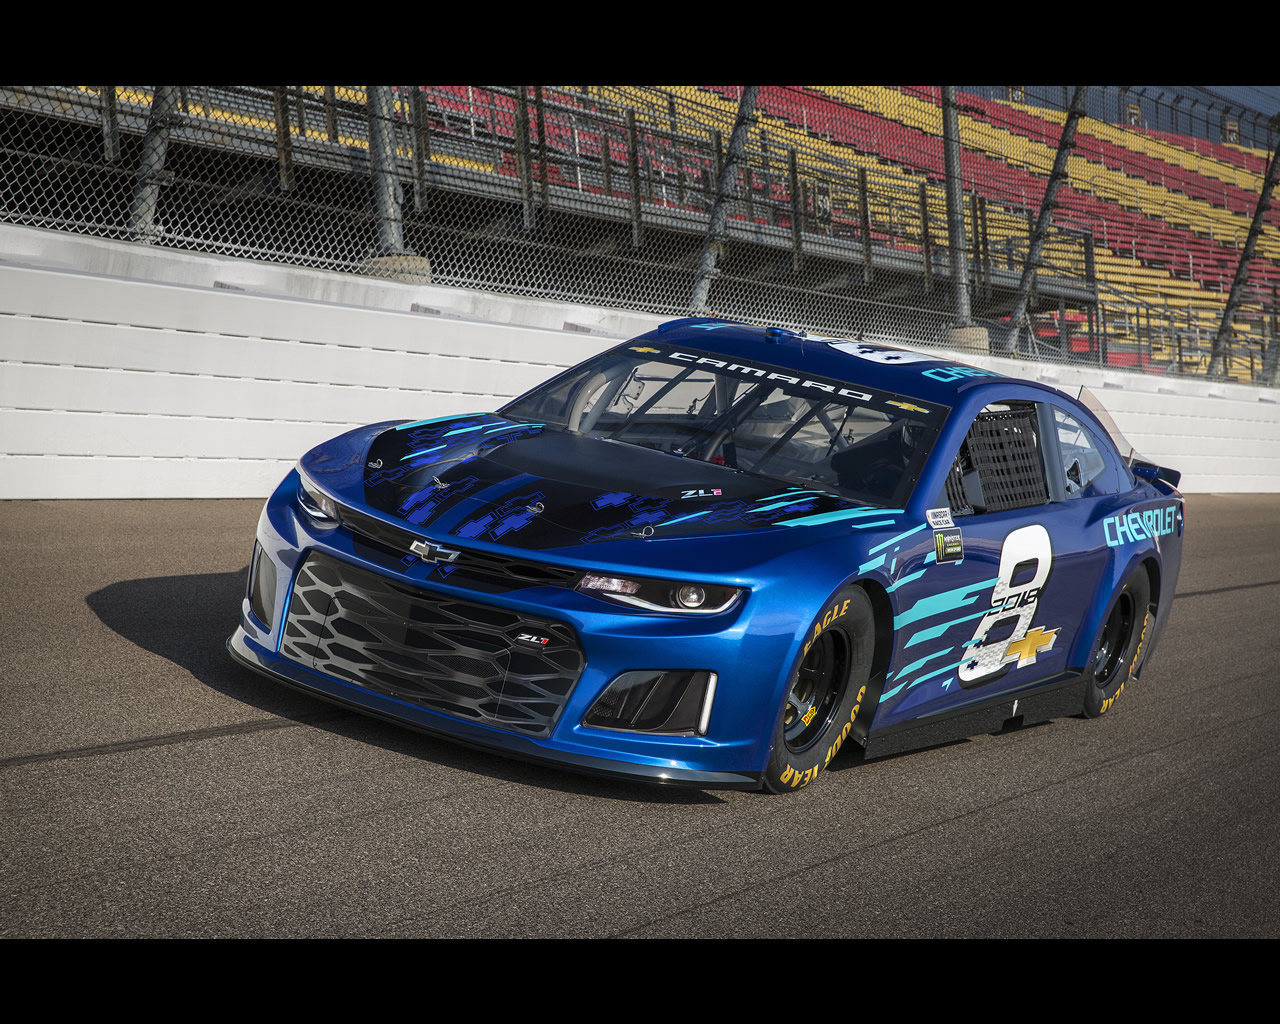 Chevrolet Camaro ZL1 NASCAR Cup and ZL1-1LE for 2018